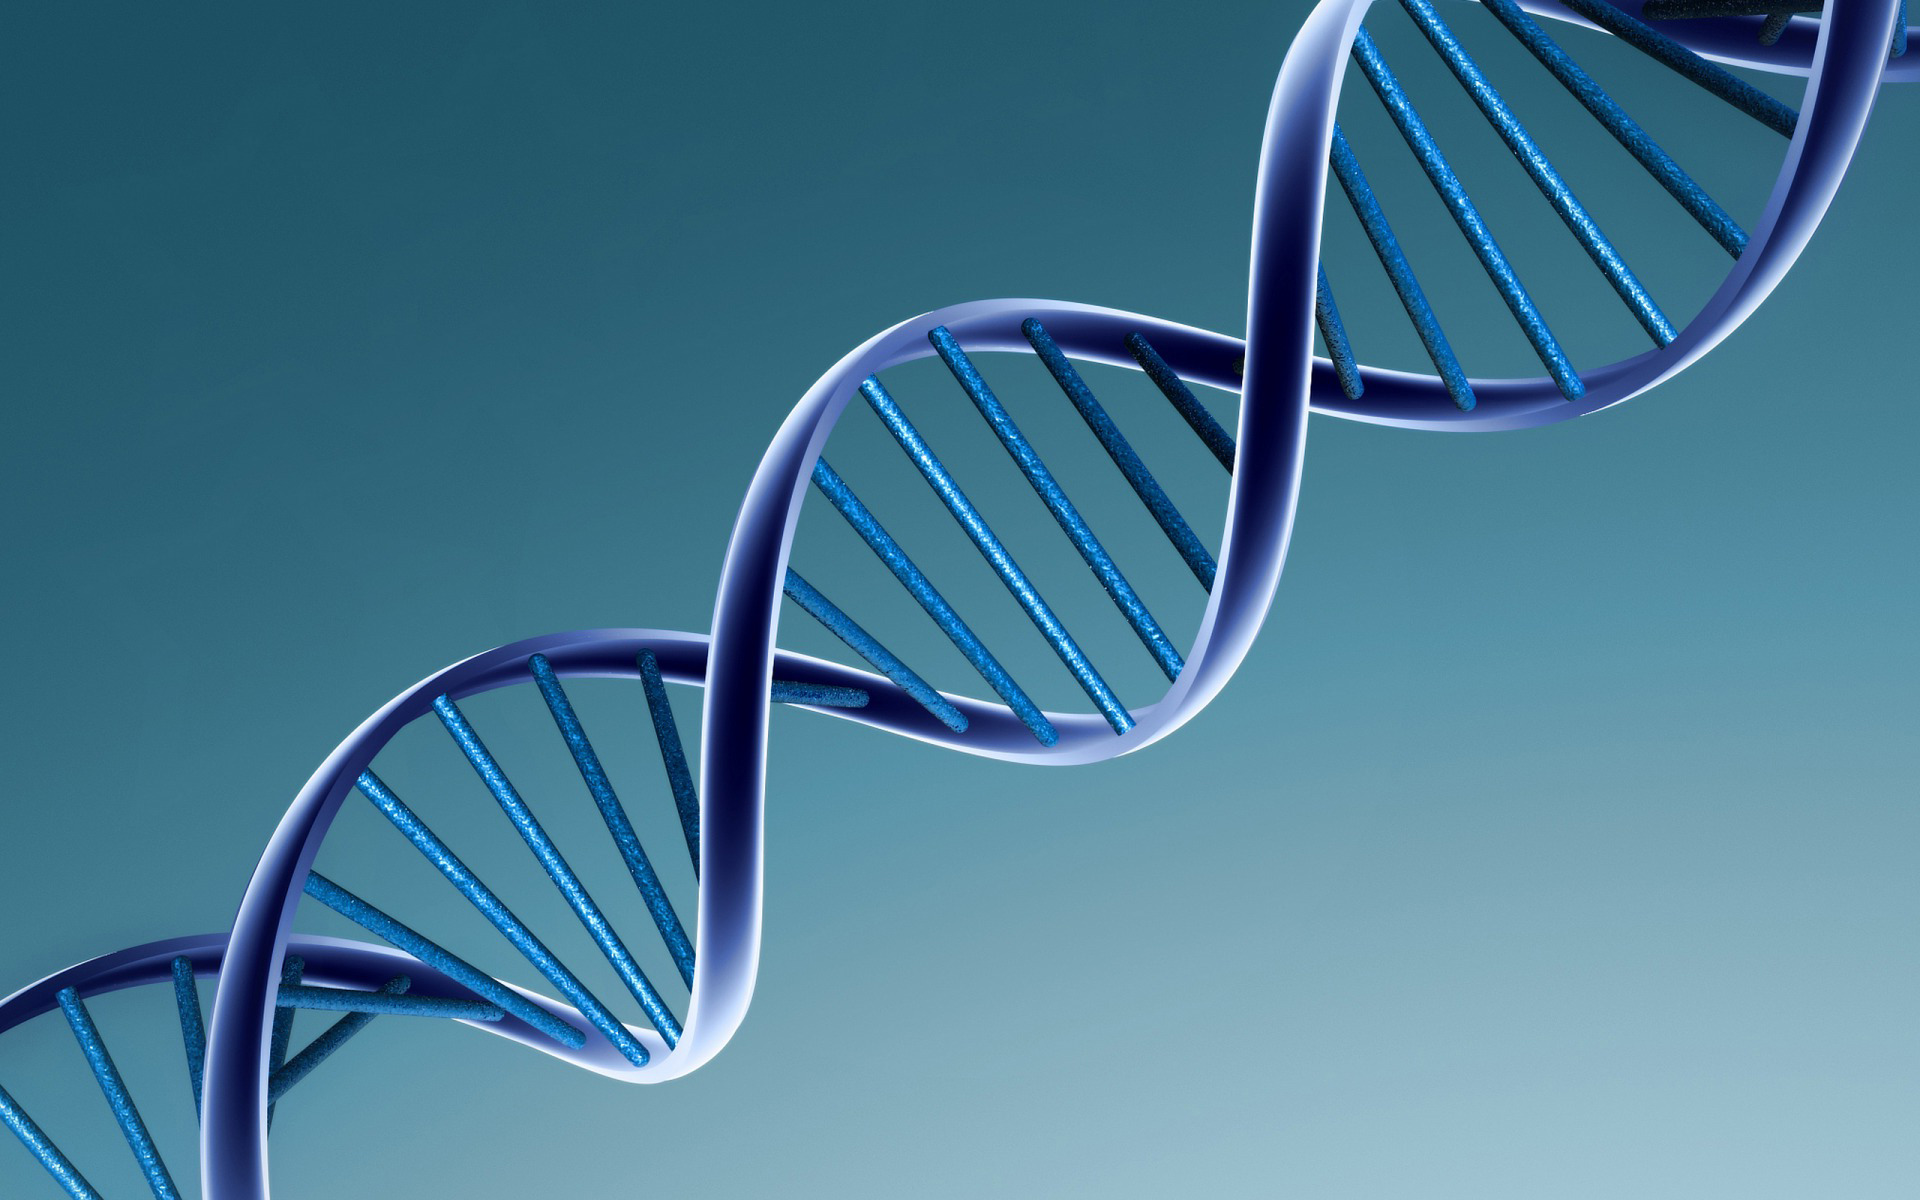 Dna Wallpaper High Resolution   WeSharePics 1920x1200